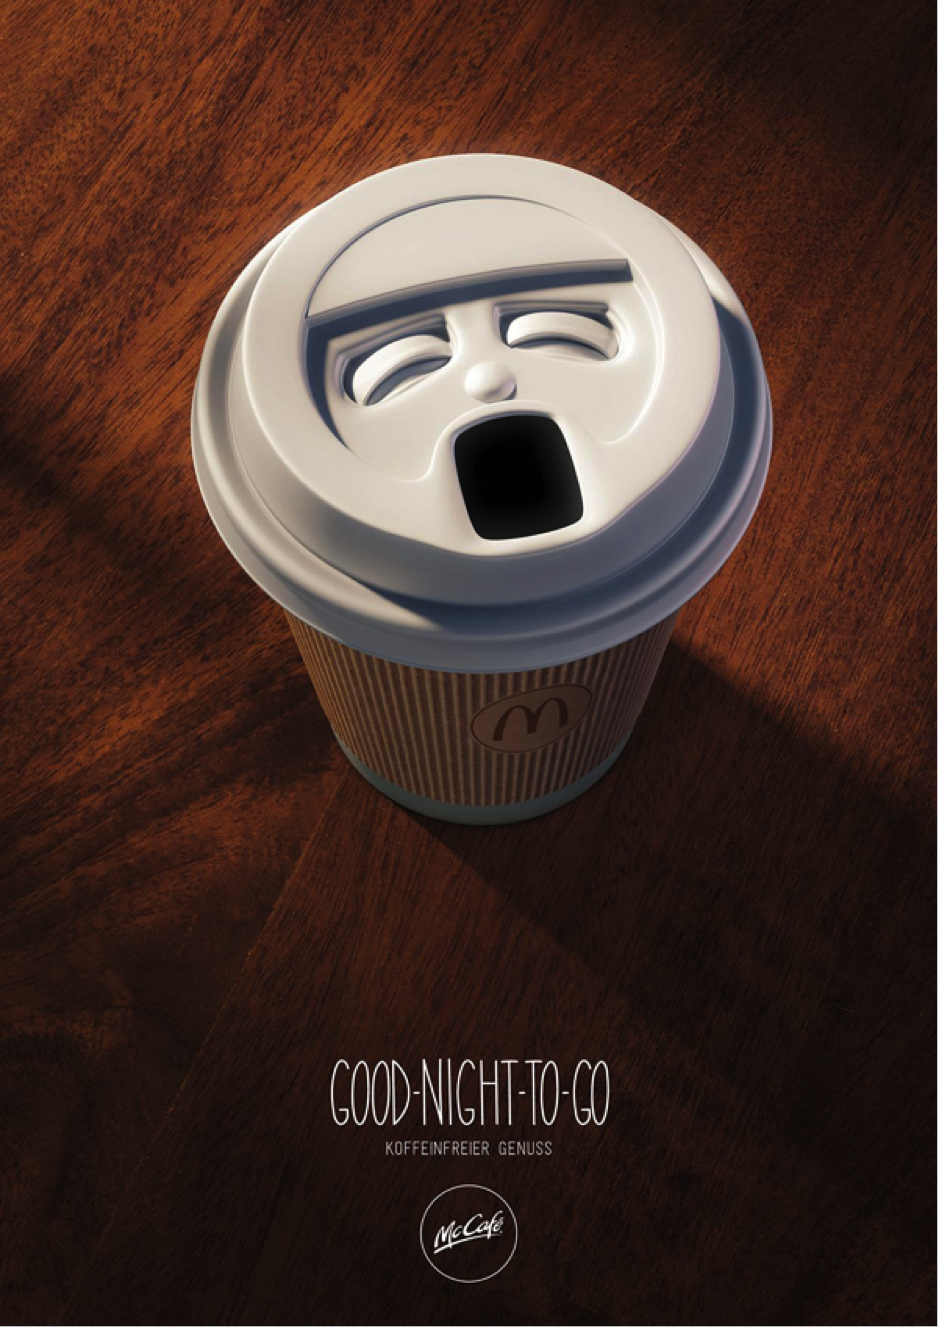 McCafe coffee cup advertisement